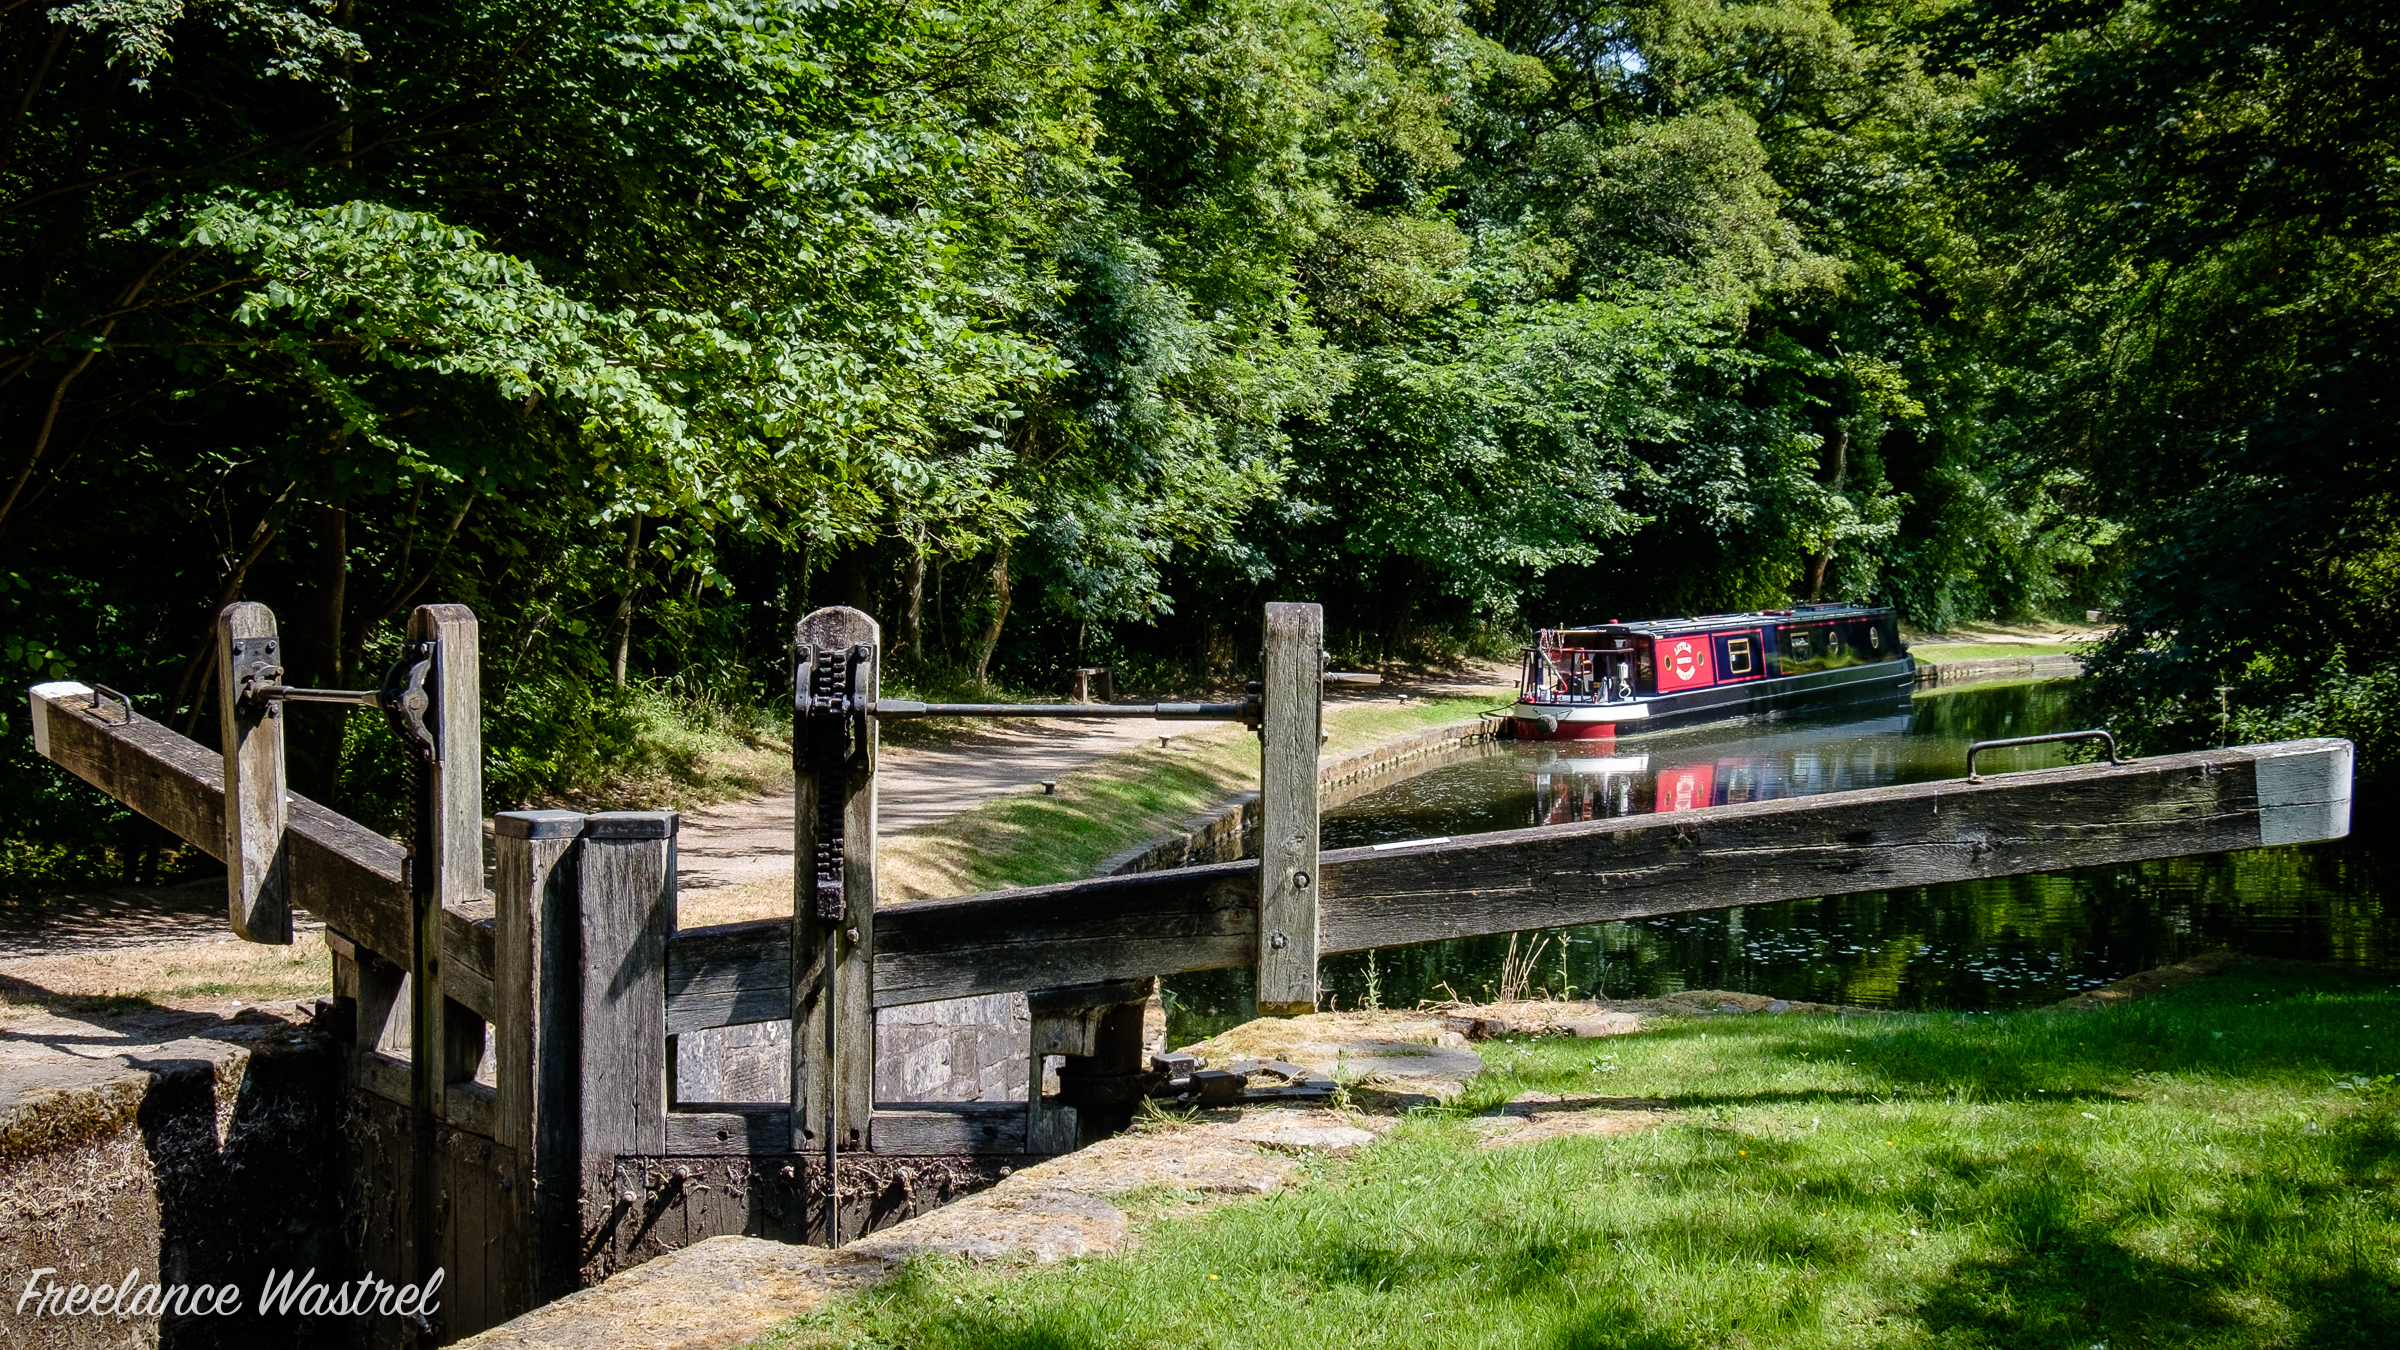 Turnerwood Bottom Lock No.37